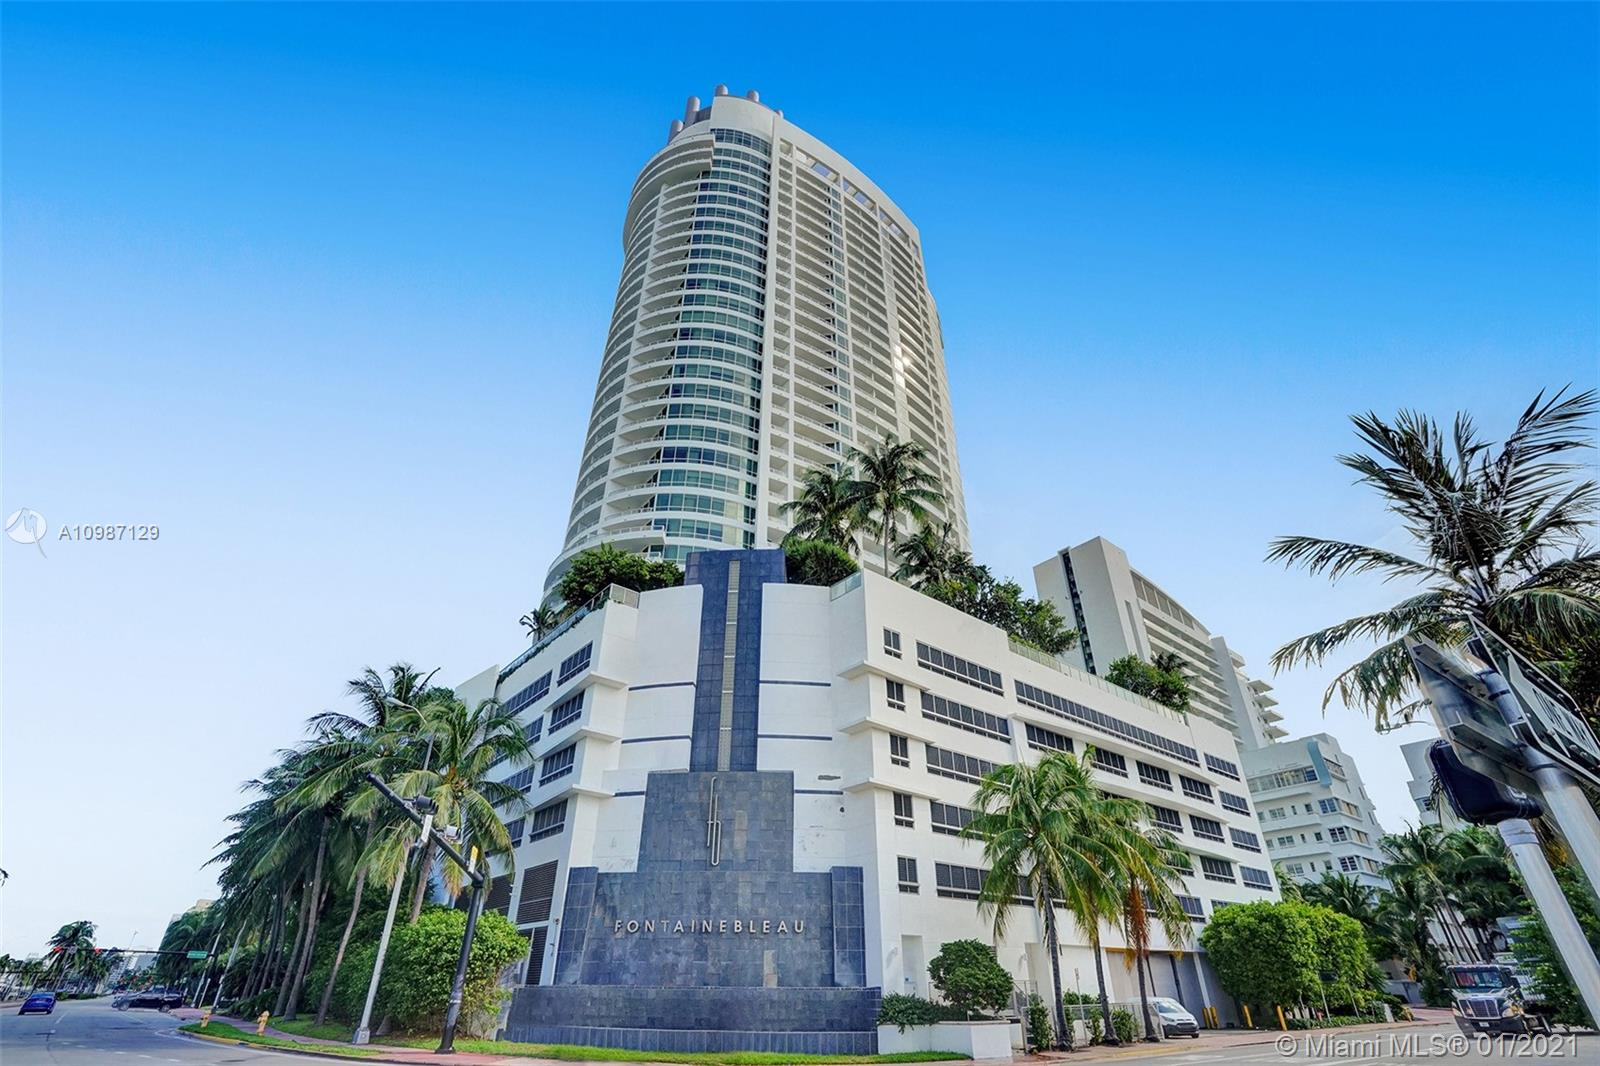 4391 Collins Ave # 401, Miami Beach, Florida 33140, ,1 BathroomBathrooms,Residential,For Sale,4391 Collins Ave # 401,A10987129